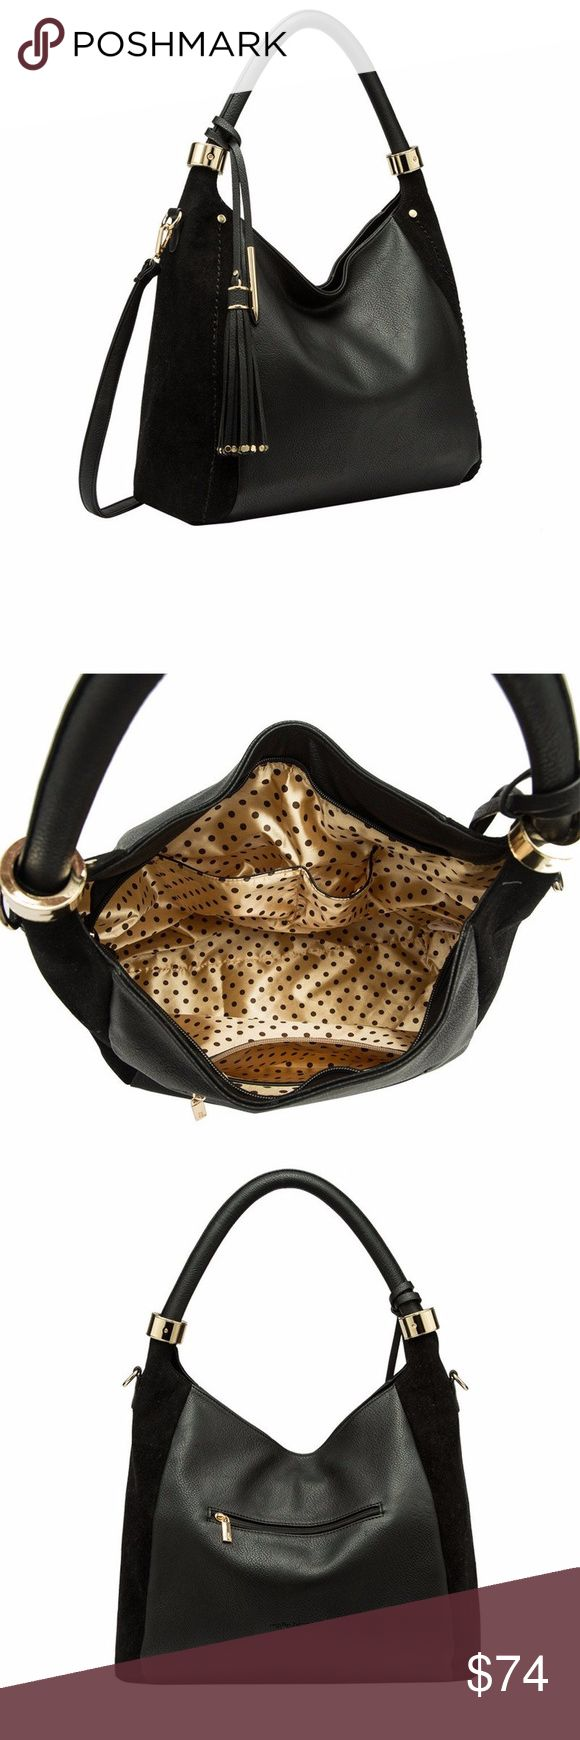 Melie Bianco Rumi Large Tassel Women's Hobo Bag Rumi Hobo features a flowing tassel attachment with gold tone studs. and dazzling gold hardware that highlights the sleek, minimalist structure of this bag.  Premium Vegan Leather Top Zipper Detachable Crossbody Strap Interior Slim Pockets Interior Zipper Pocket Dimensions 17.5'L x 6'W x 12'H Handle Drop 11' Color:  Black Used once; like new Melie Bianco Bags Hobos